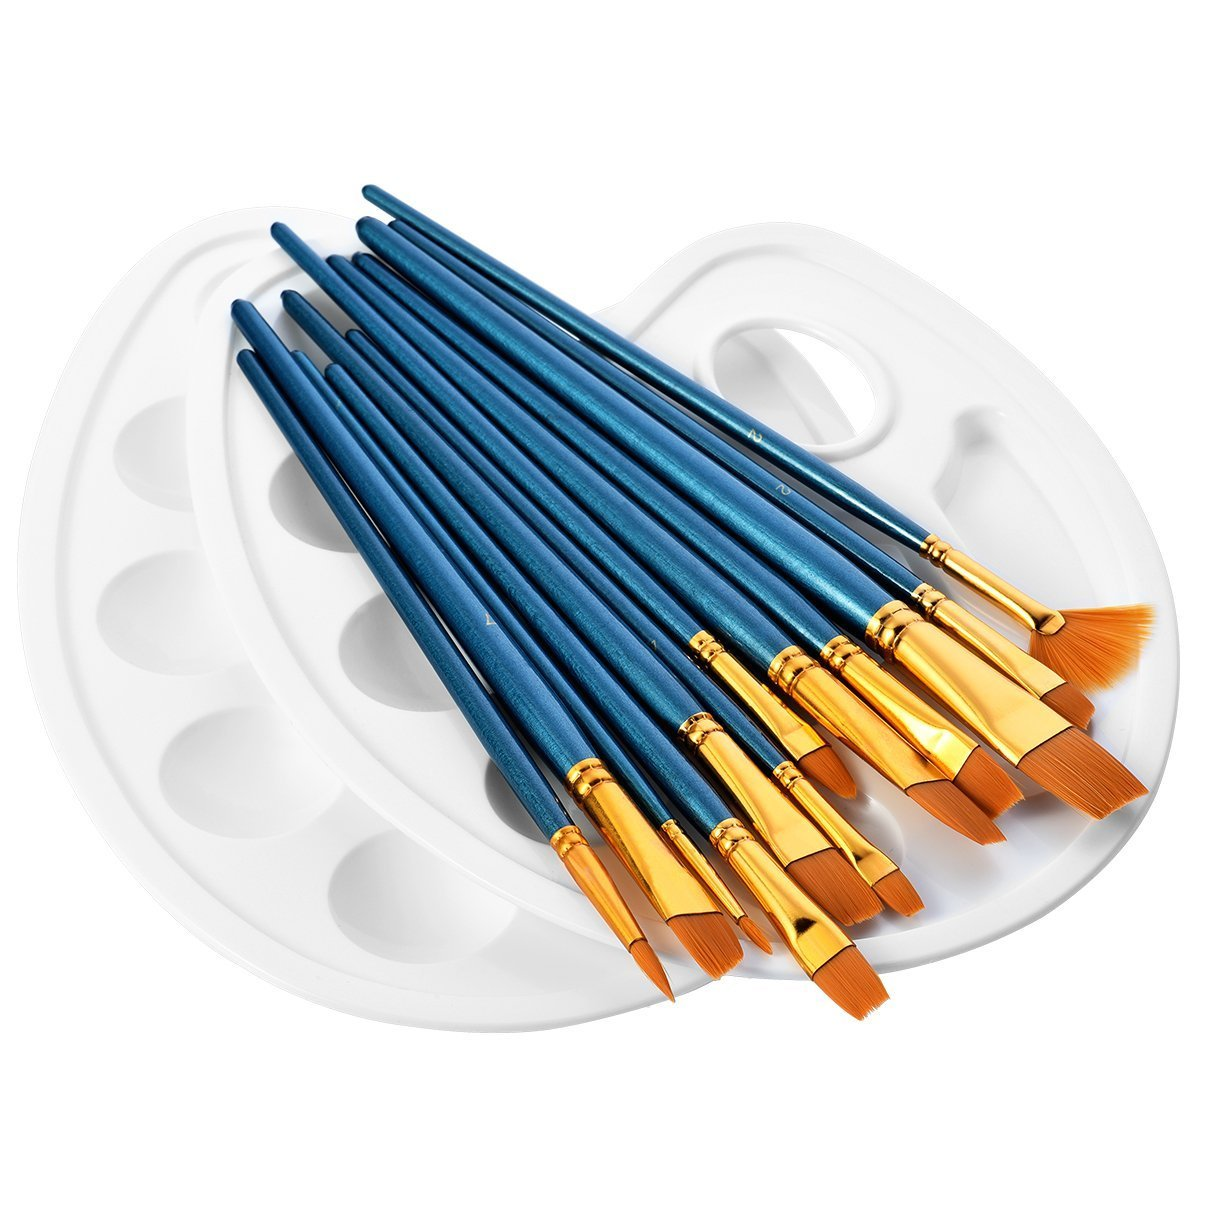 Morkia Paint Brushes, 12 Pieces Art Nylon Painting Brush Set and 2pcs Paint Tray Palettefor Watercolor, Oil and Acrylic Painting 4336957135